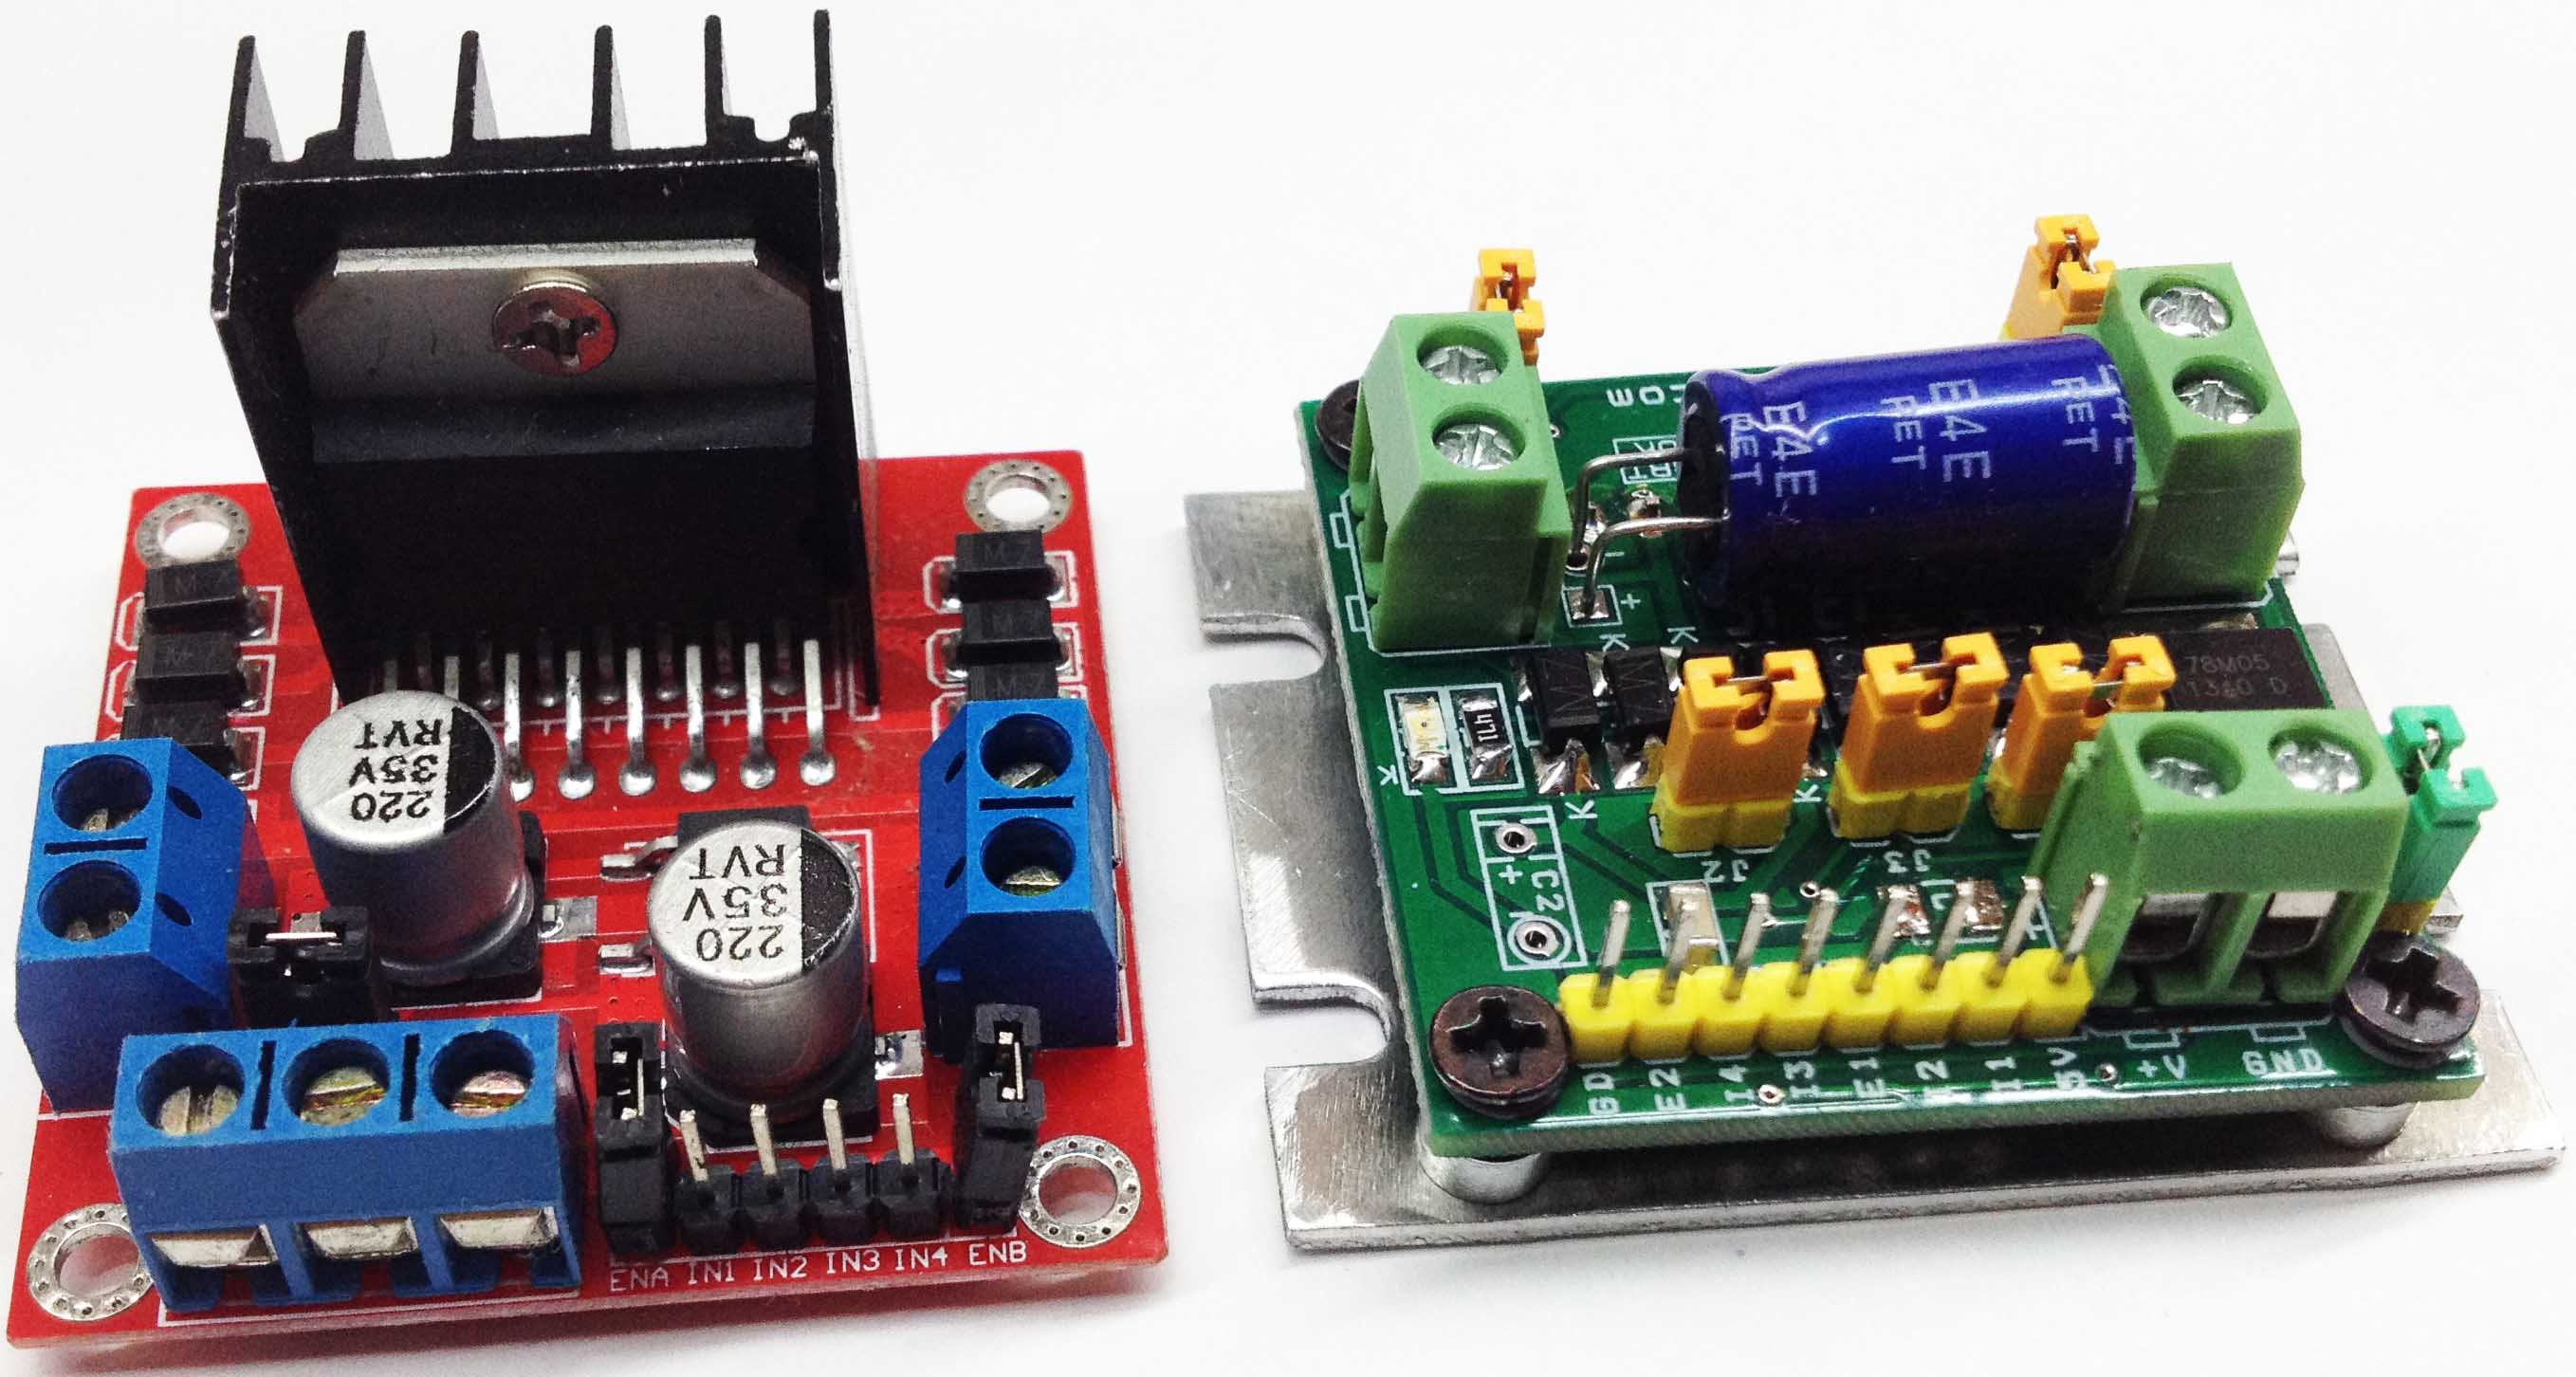 L298 DC MOTOR DRIVER BOARD WITH TWO OR SINGLE MOTOR DRIVE OPTION AND ON BOARD 7805 REGULATOR (6)